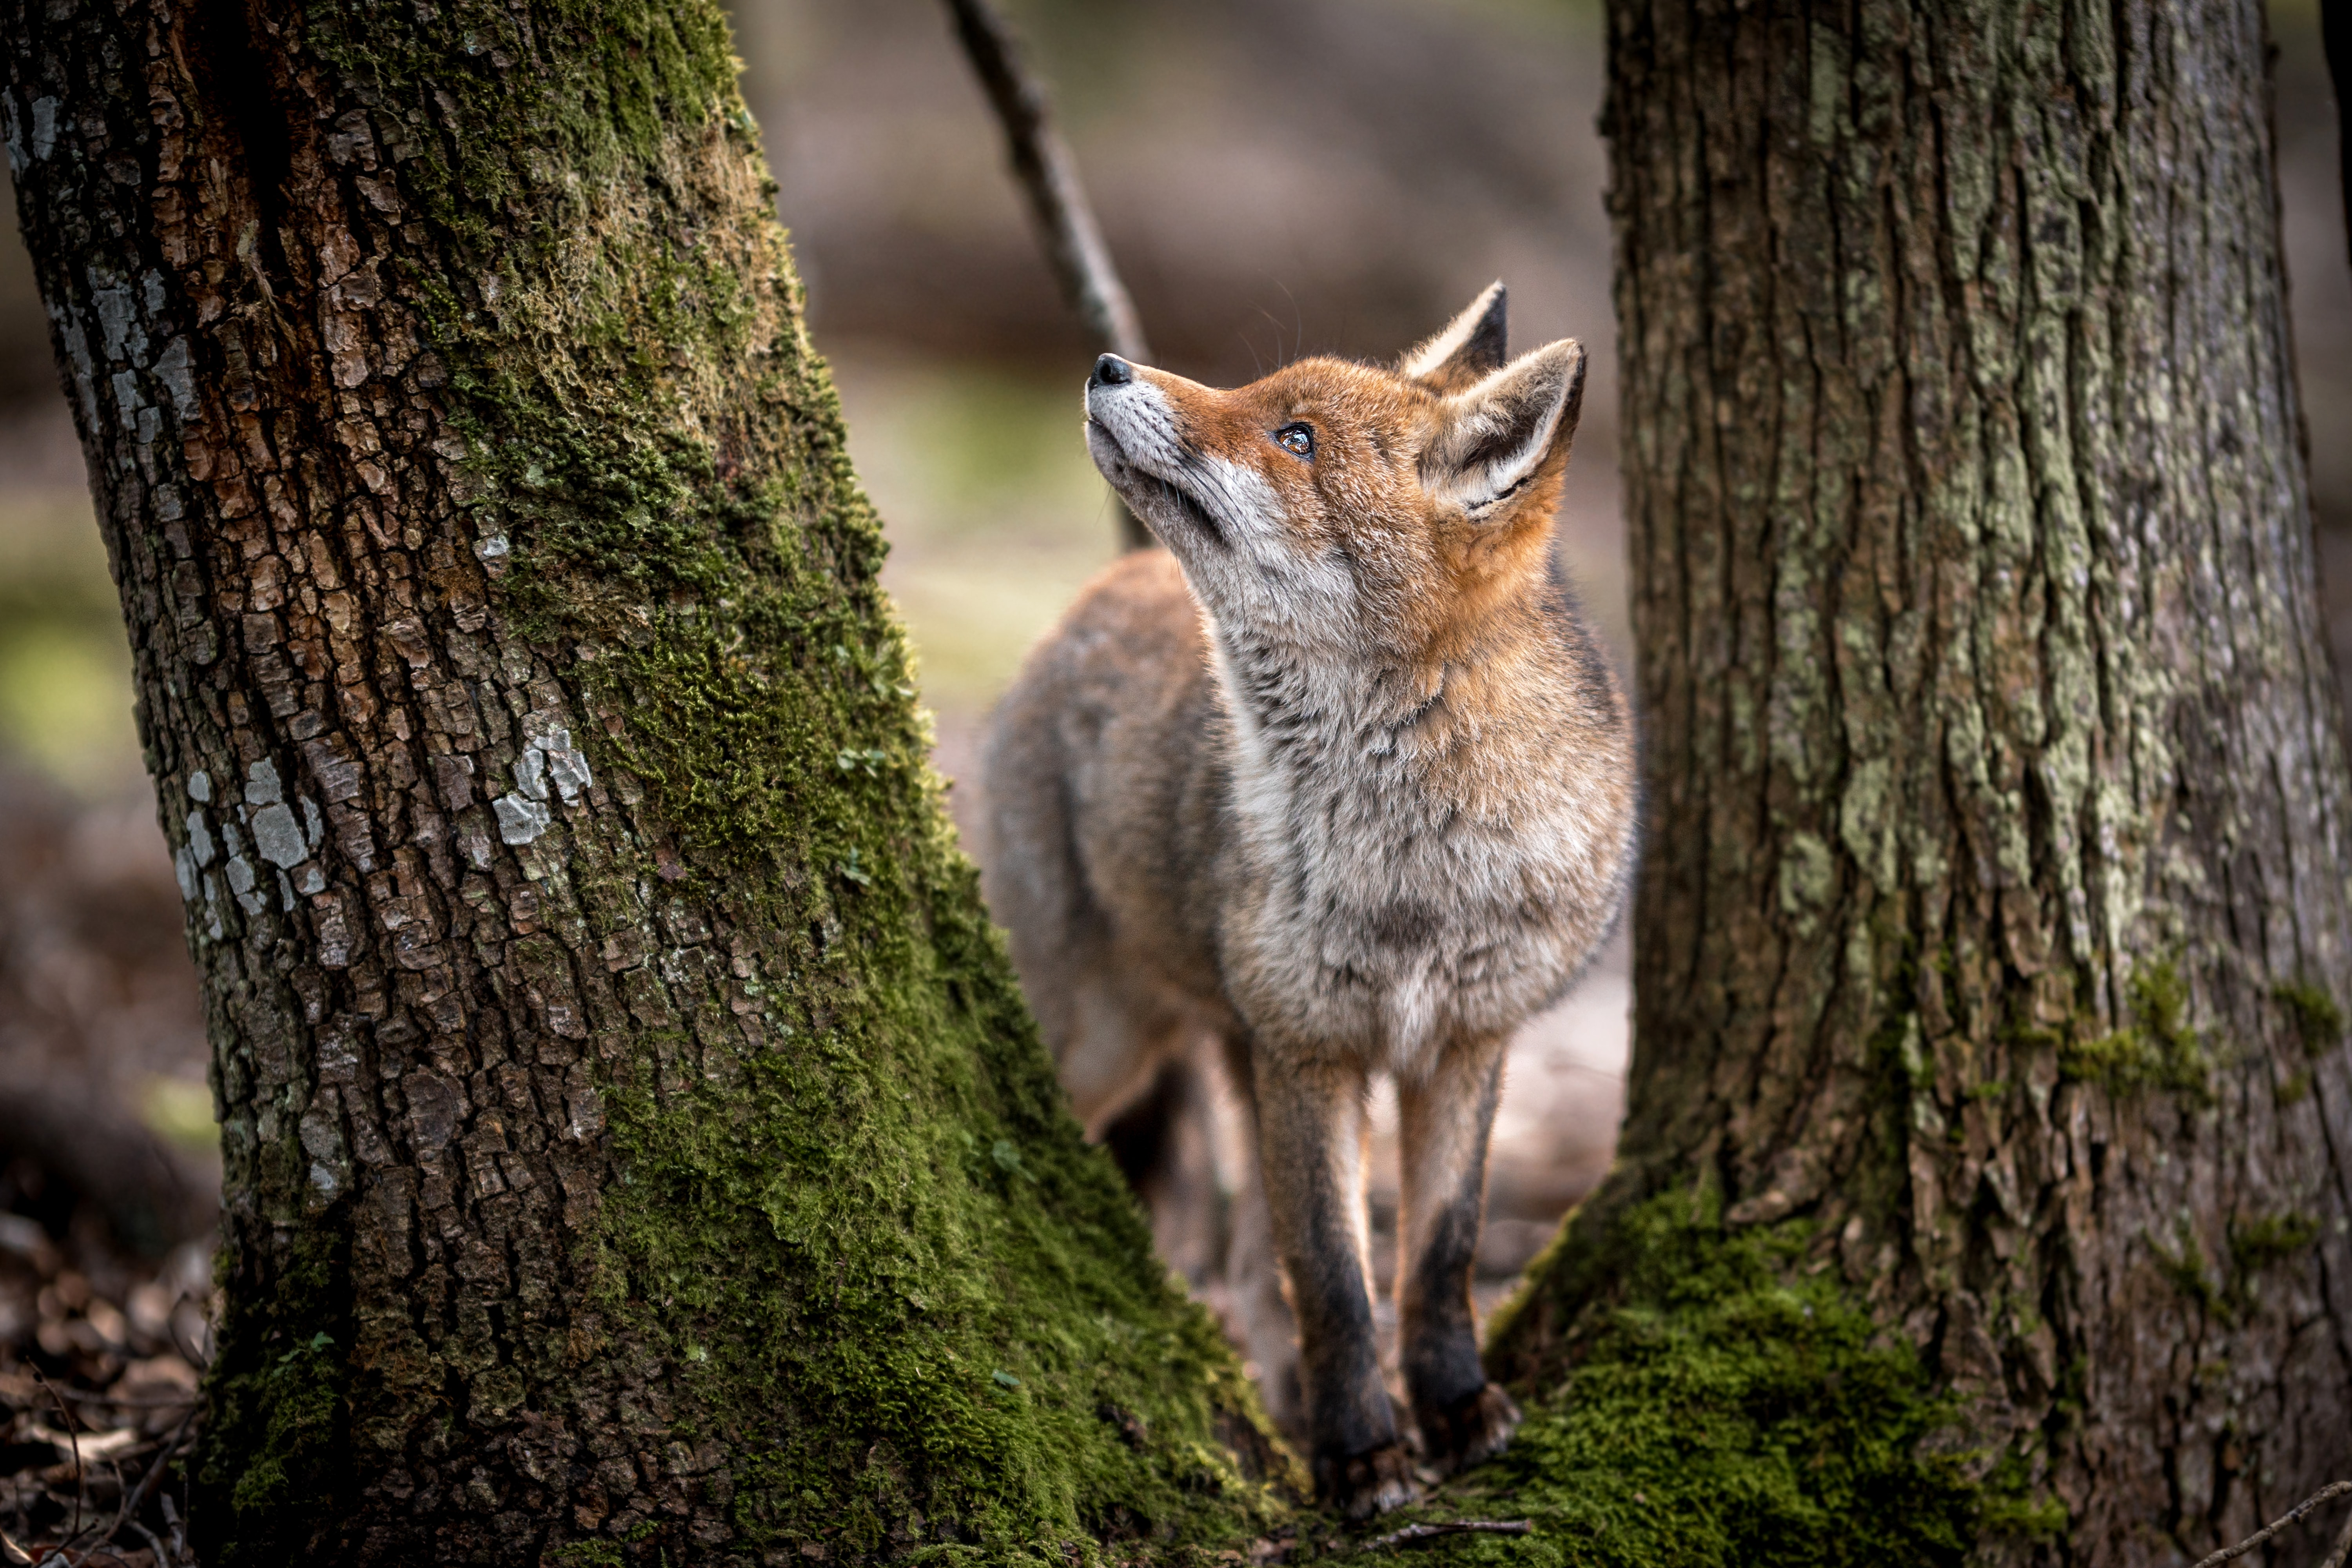 143438 download wallpaper Animals, Fox, Animal, Predator, Sight, Opinion, Trees, Wildlife screensavers and pictures for free